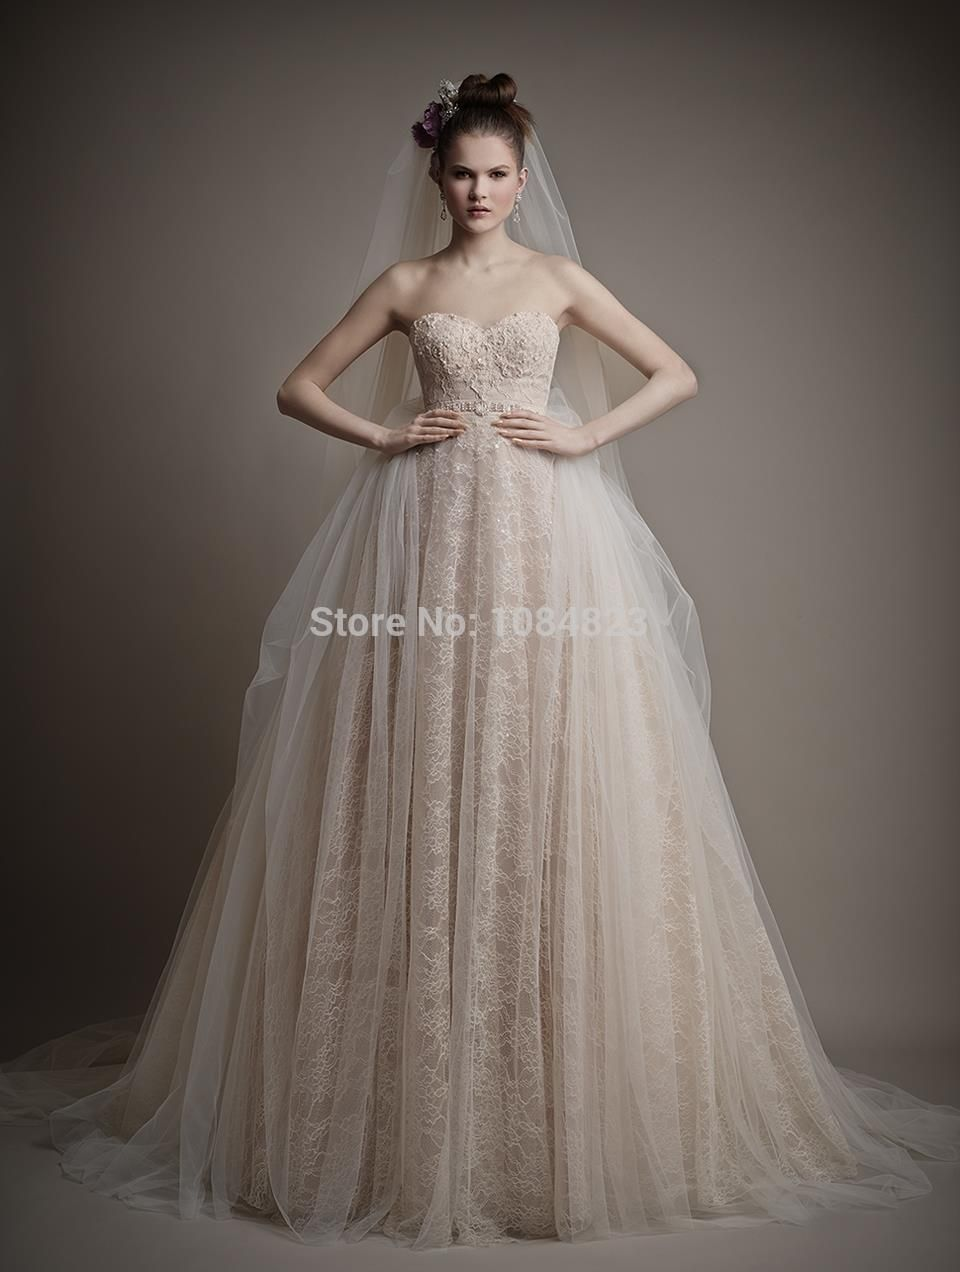 Champagne Tulle Wedding Dress